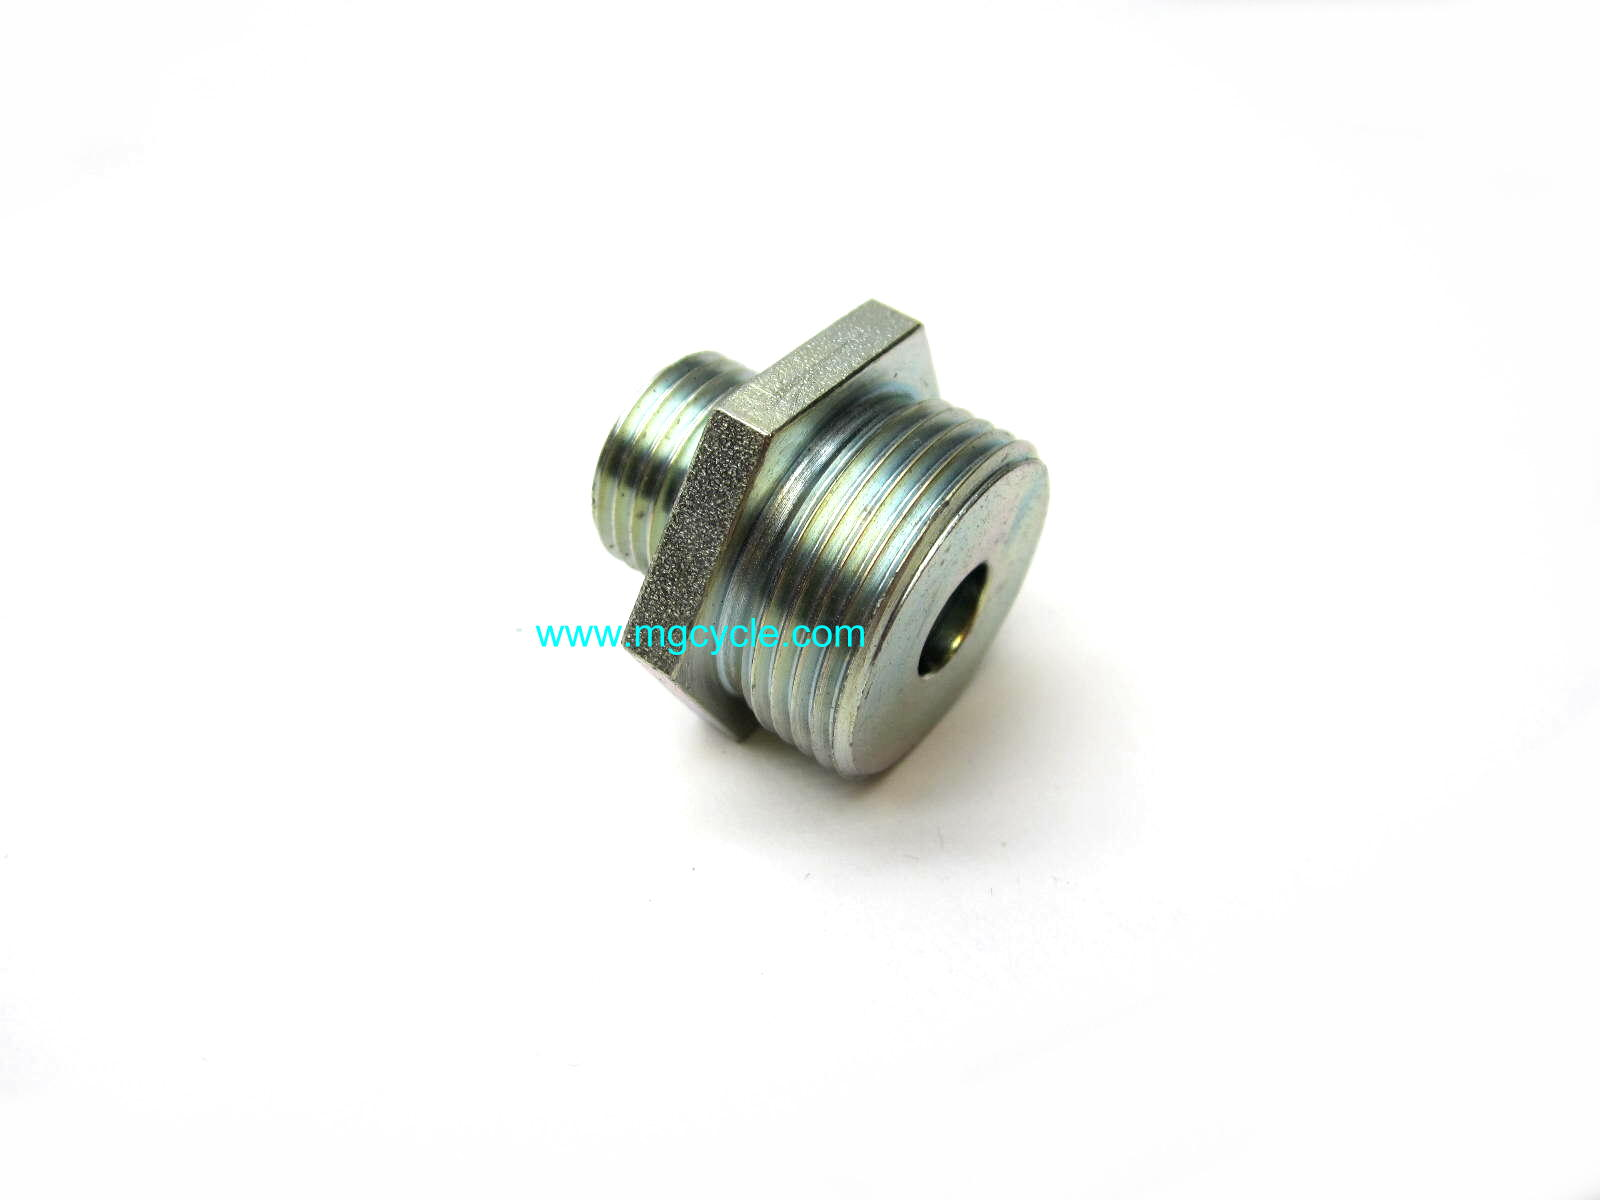 Oil filter threaded adapter 1975-1993 big twins GU14003800